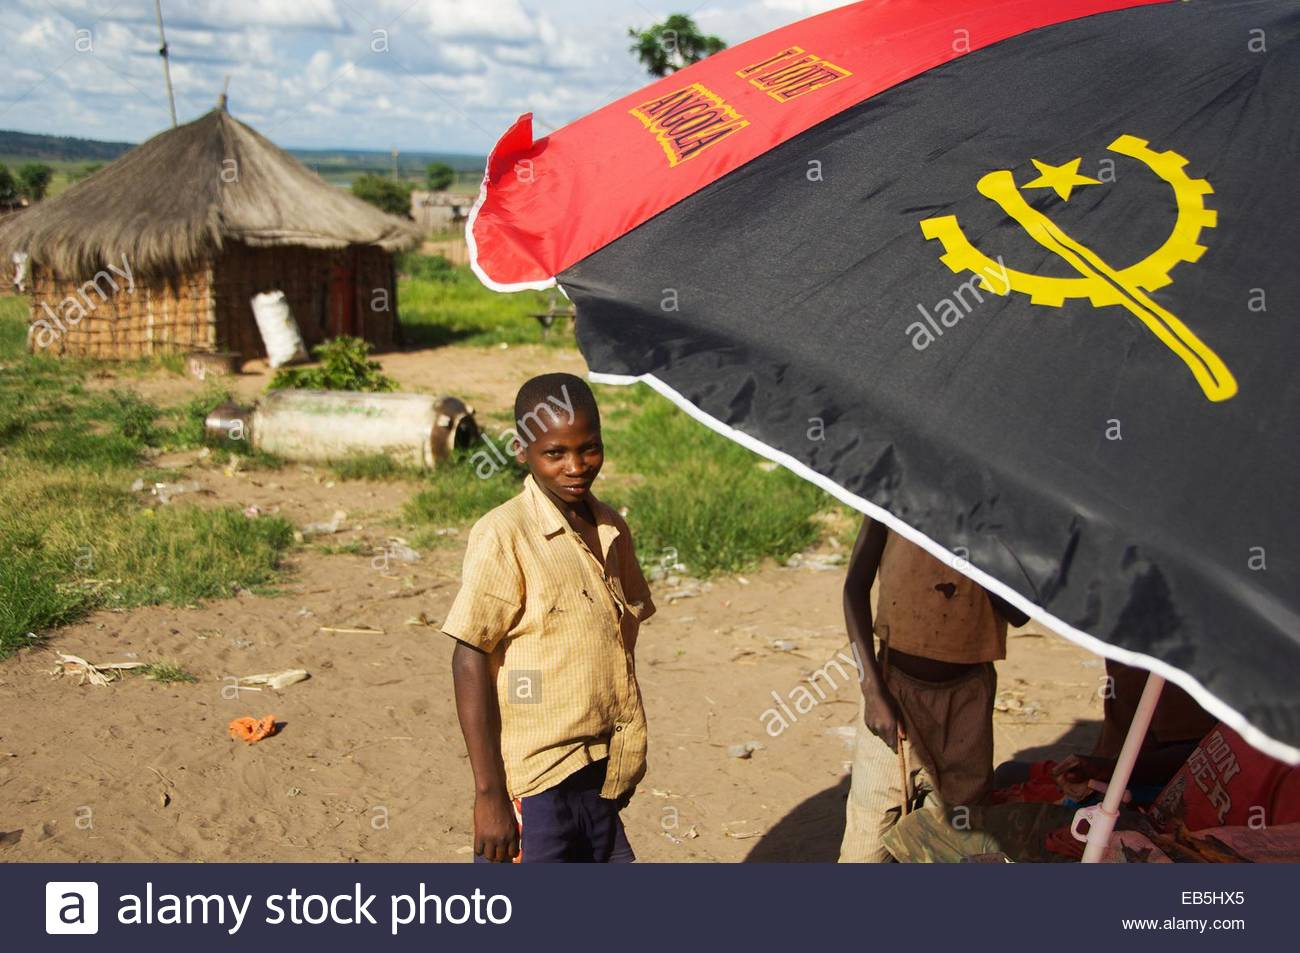 The 'I love Angola' slogan on an umbrella sheltering a boys goods on his market stall in Cuito Cuanavale. - Stock Image